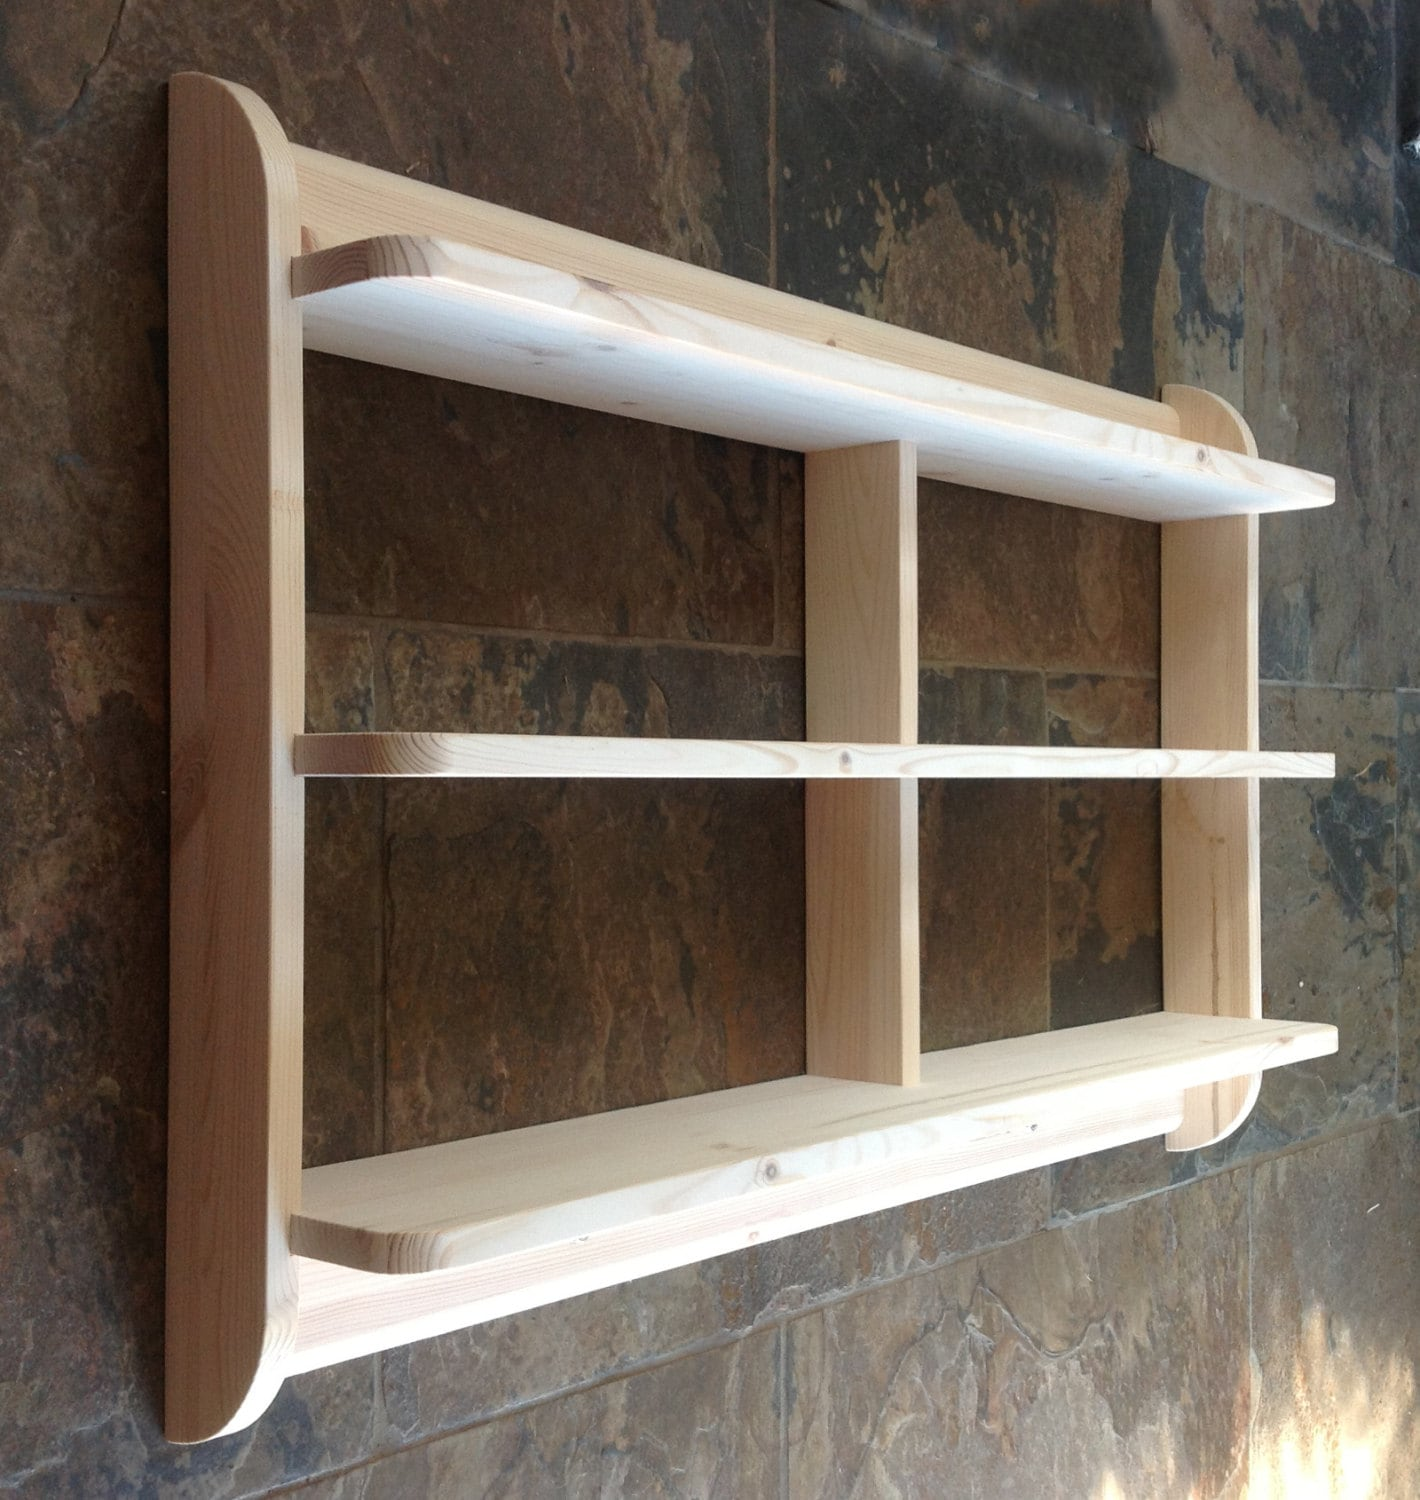 Shallow Open Pantry Shelves In Kitchen: Wide Wall Mounted Open Back Shelf Unit. Kitchen Shelves Or Dvd